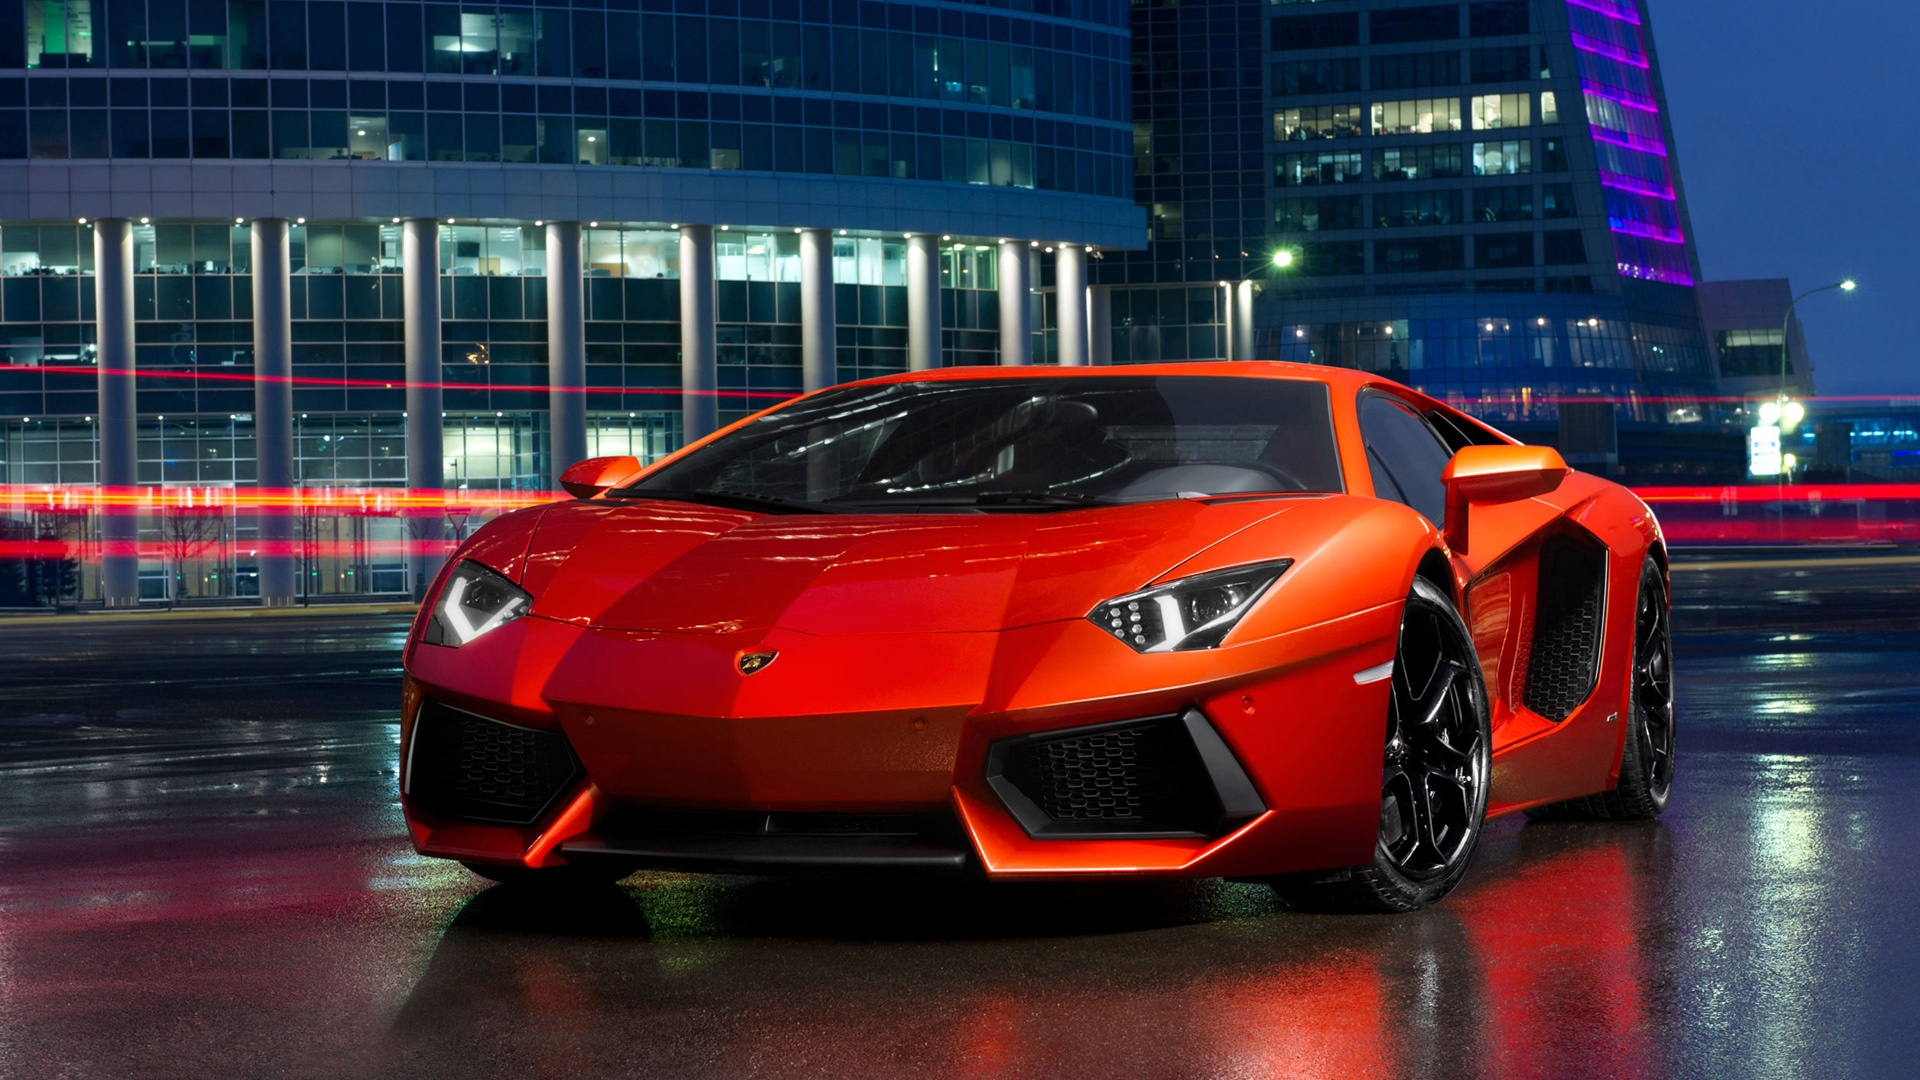 download exotic car wallpapers pack - Cool Exotic Cars Wallpaper